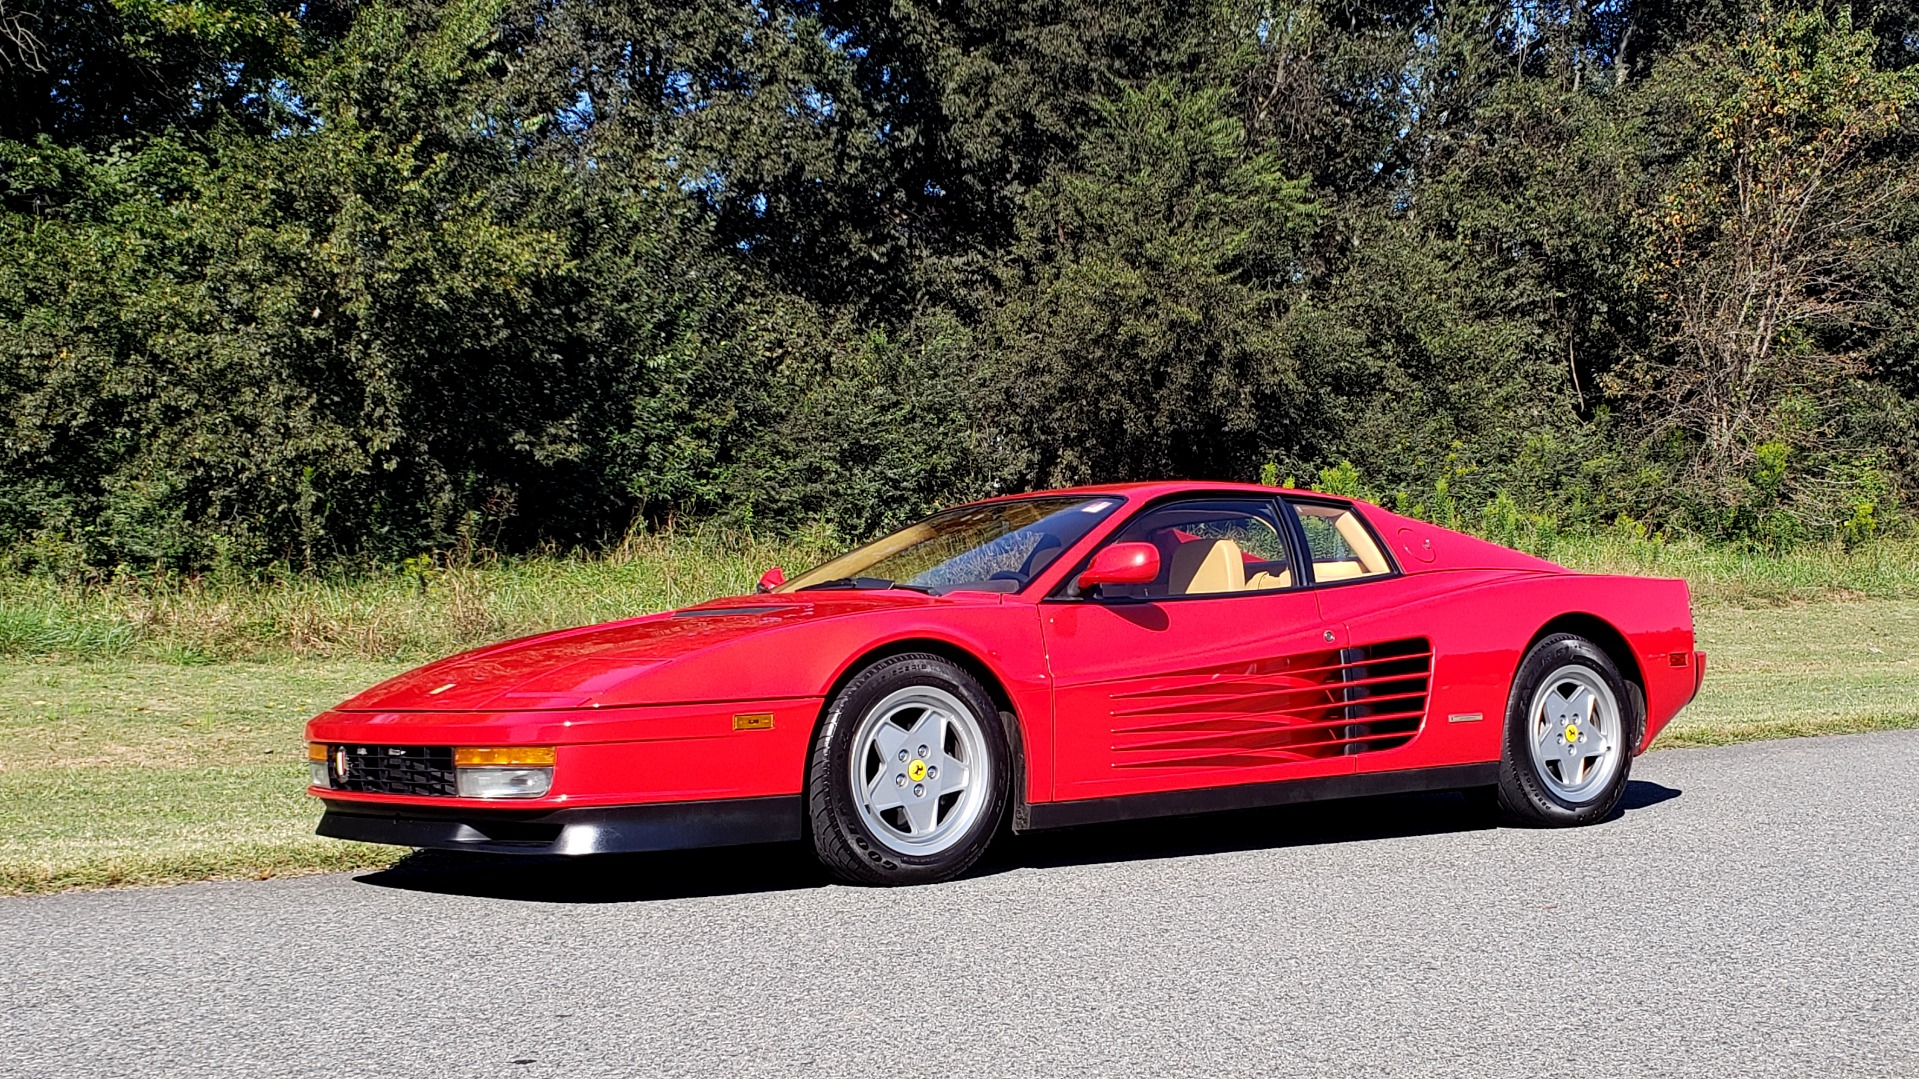 Used 1988 Ferrari TESTAROSSA COUPE / 4.9L FLAT-12 / 5-SPEED MANUAL / LOW MILES SUPER CLEAN for sale $128,999 at Formula Imports in Charlotte NC 28227 6